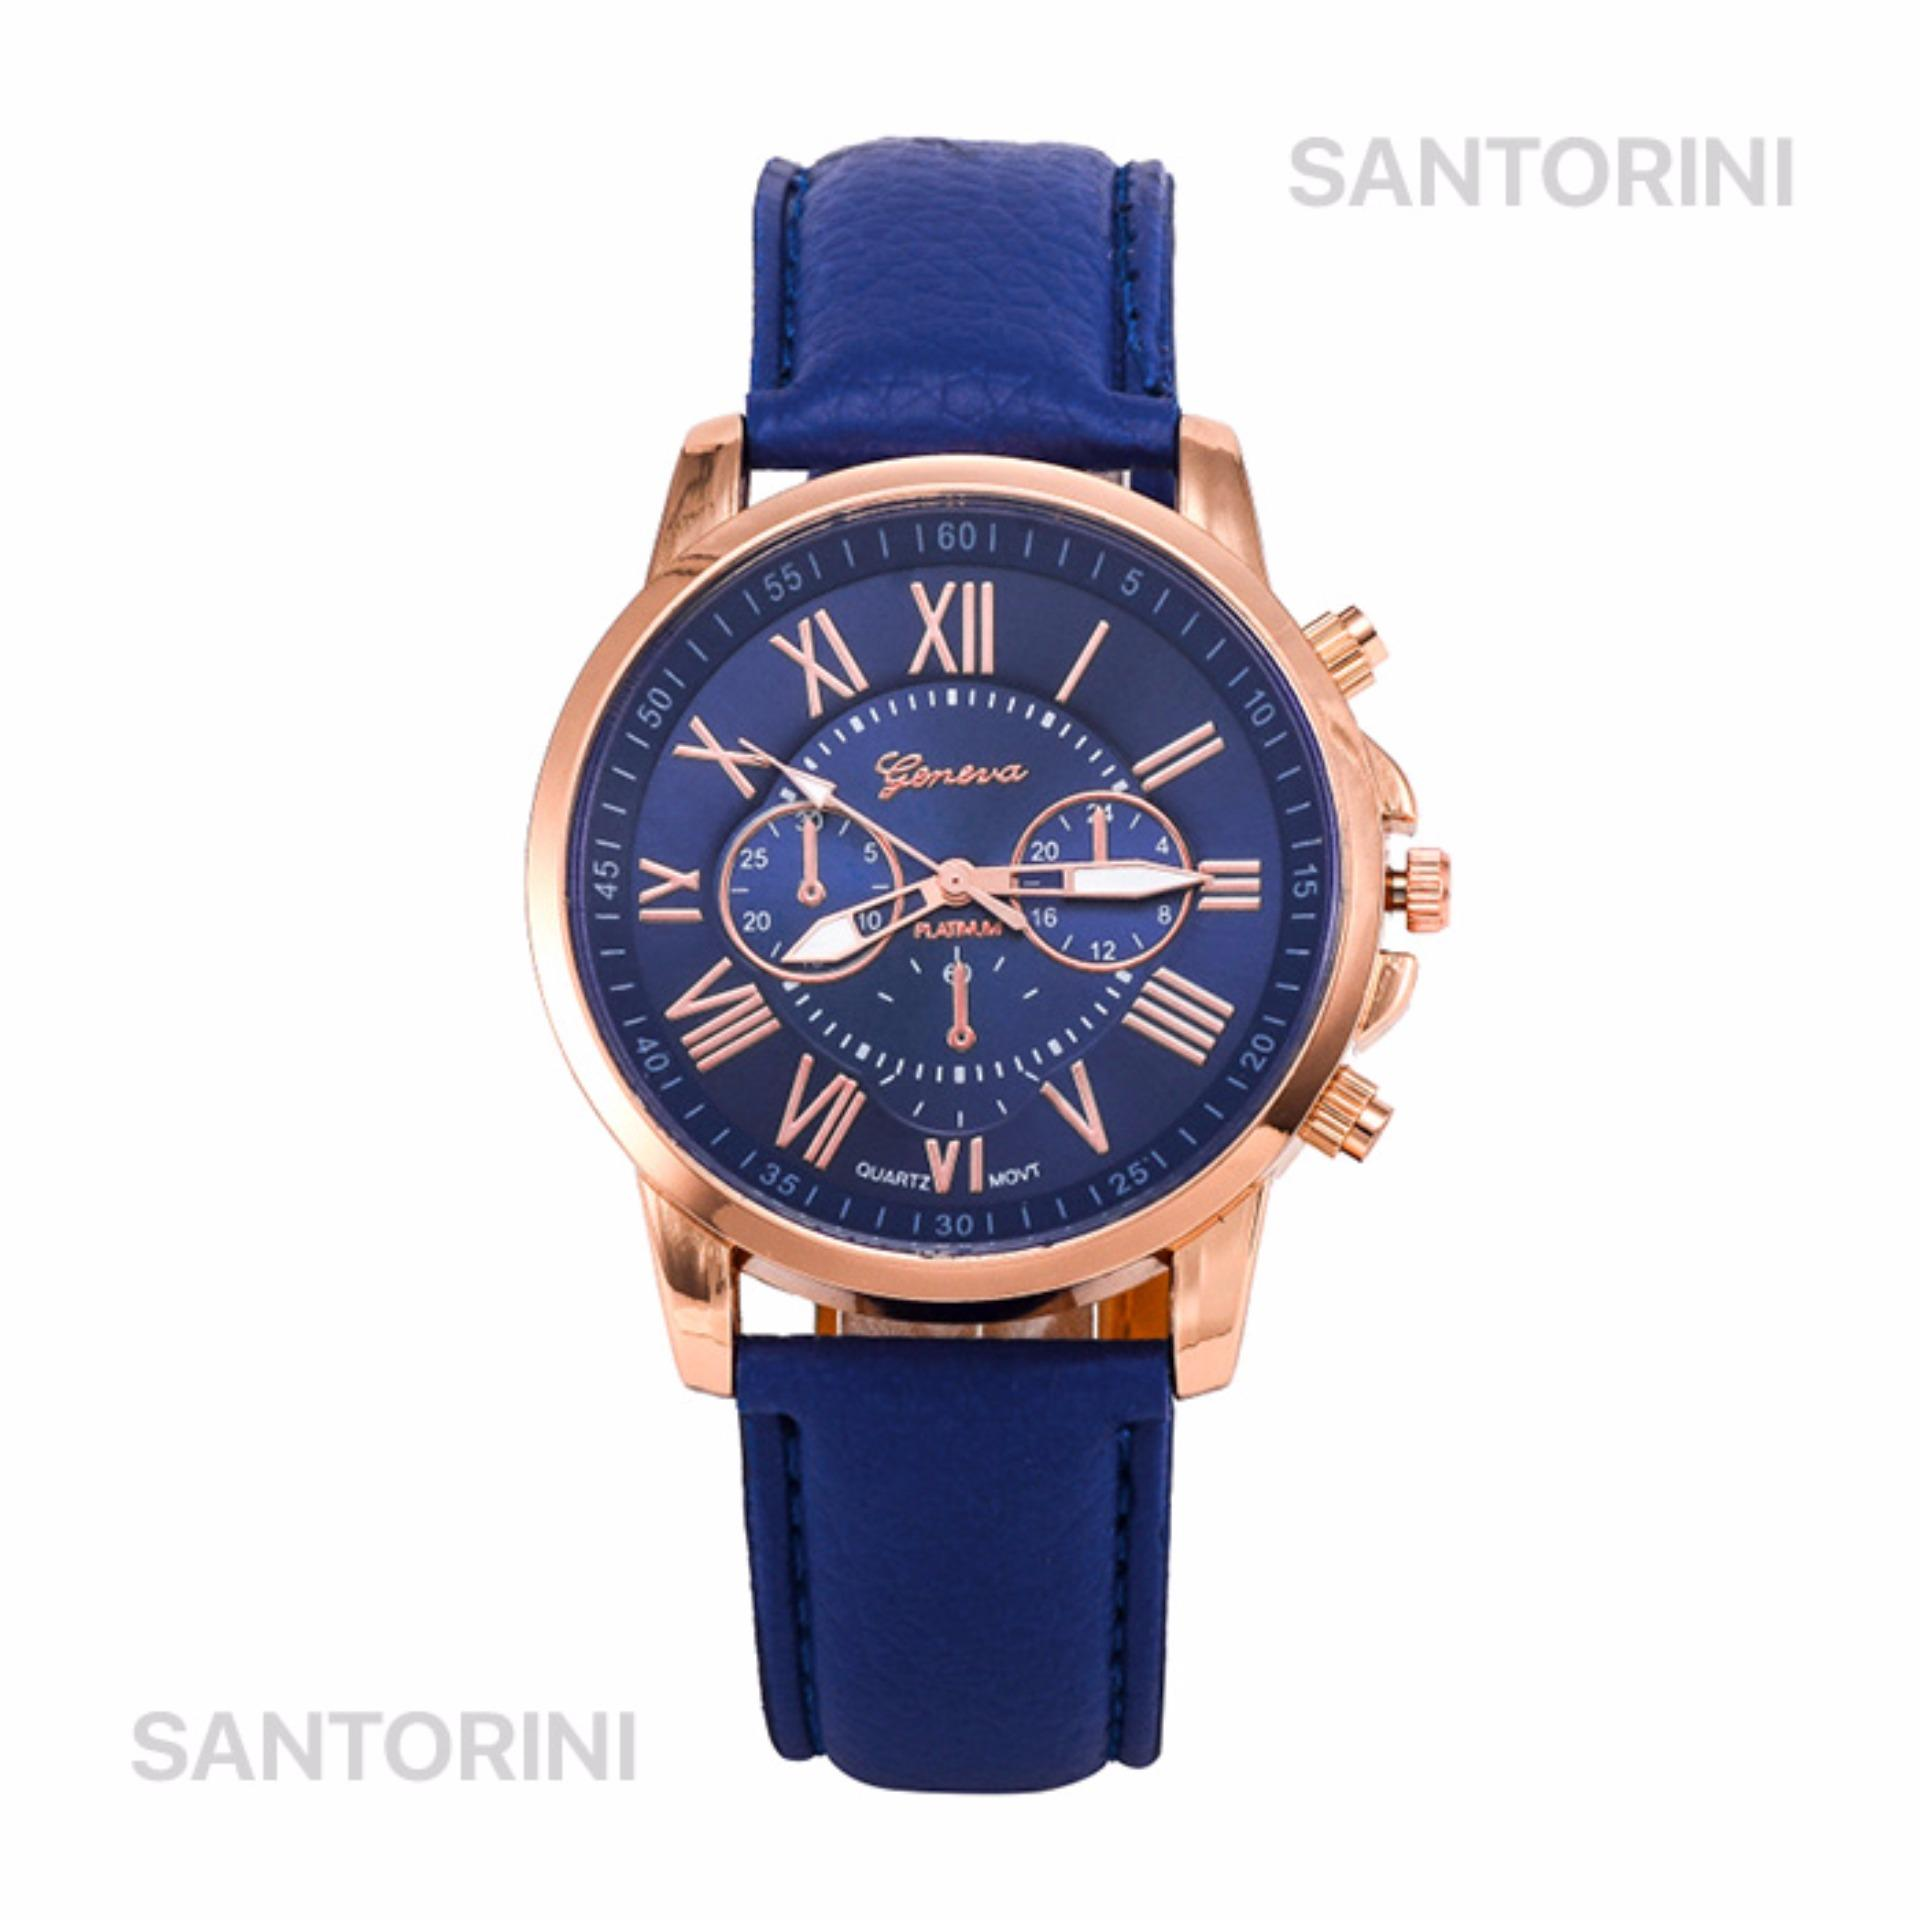 GENEVA Jam Tangan Modis Wanita Analog Fashion Women Analog Quartz Strap Wrist Watch BLUE